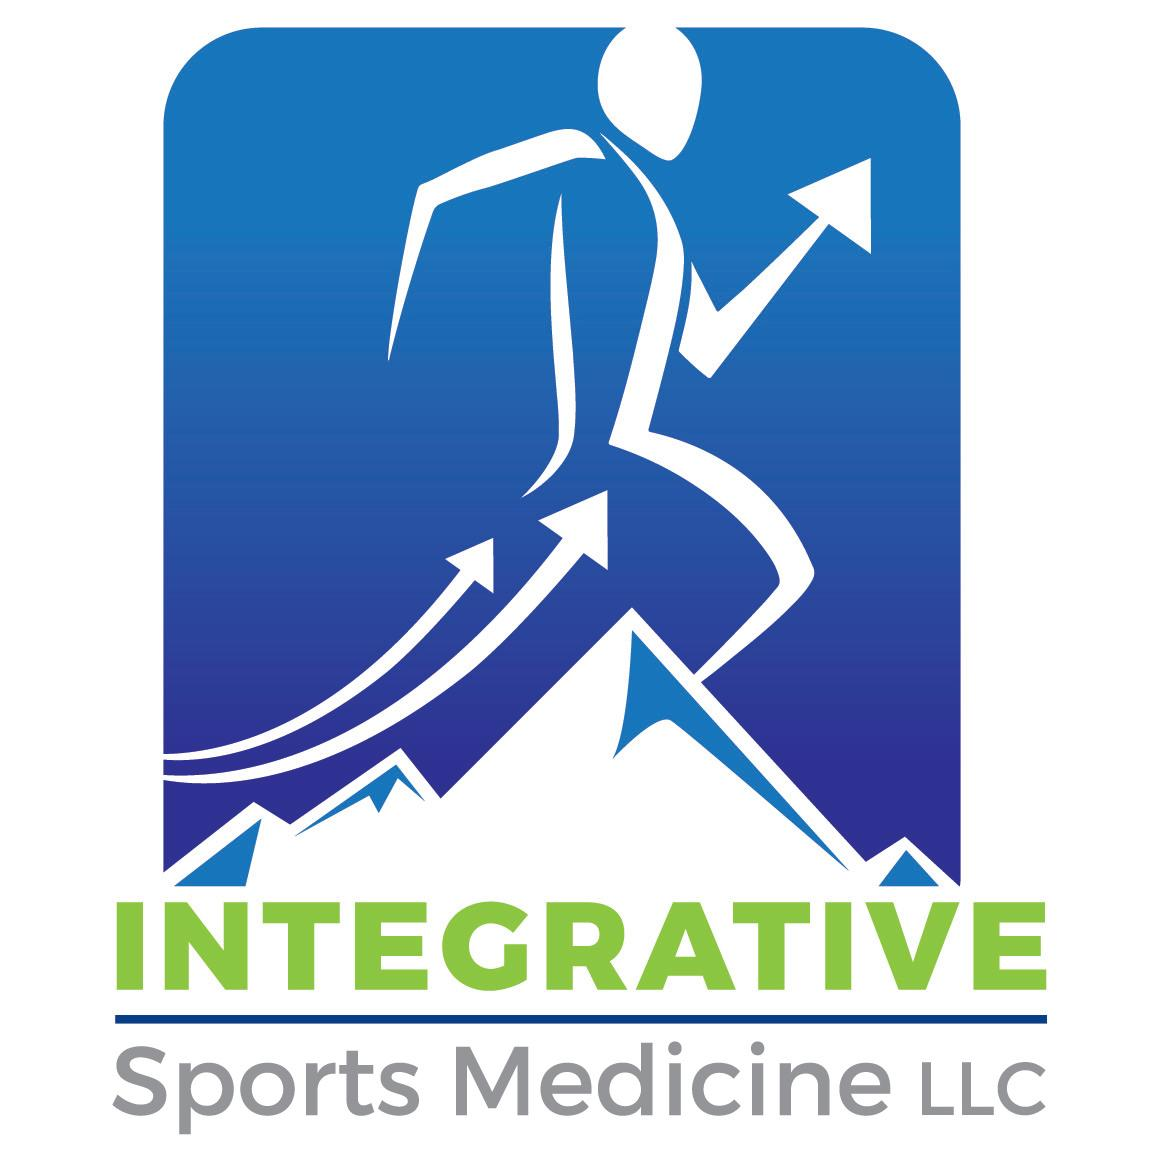 Integrative Sports Medicine, LLC / Brad Abrahamson, MD image 8